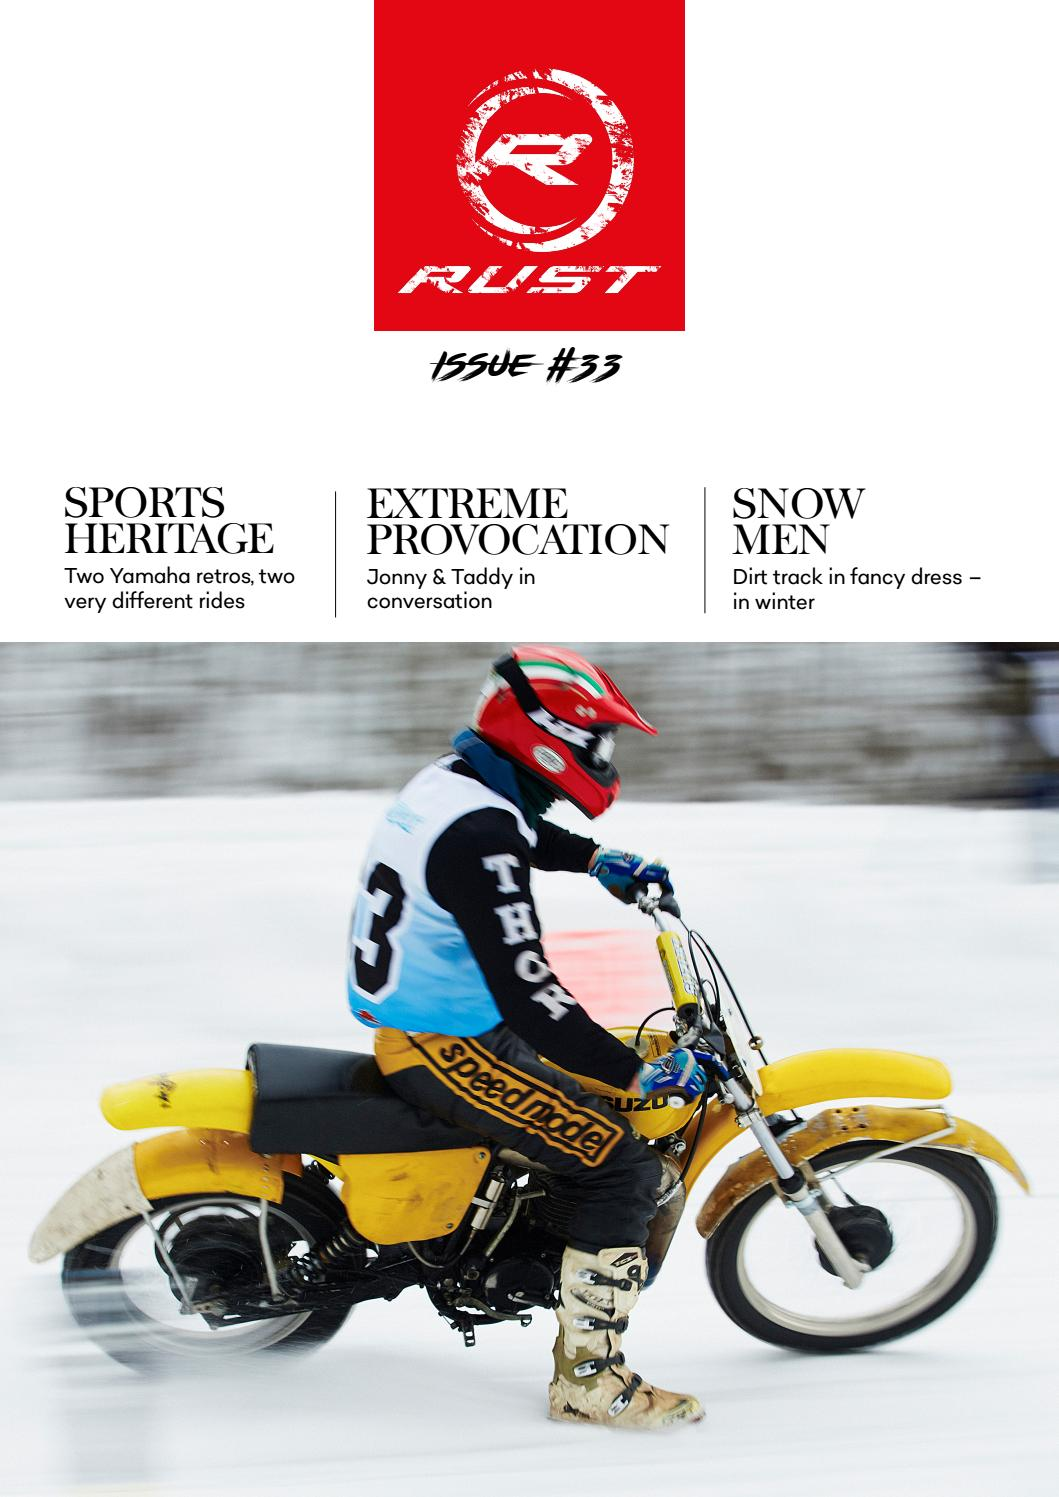 Rust Magazine Issue 33 By Rustsportscom Issuu Xs750e Yamaha Motorcycle Front Disc Brake Caliper Diagram And Parts